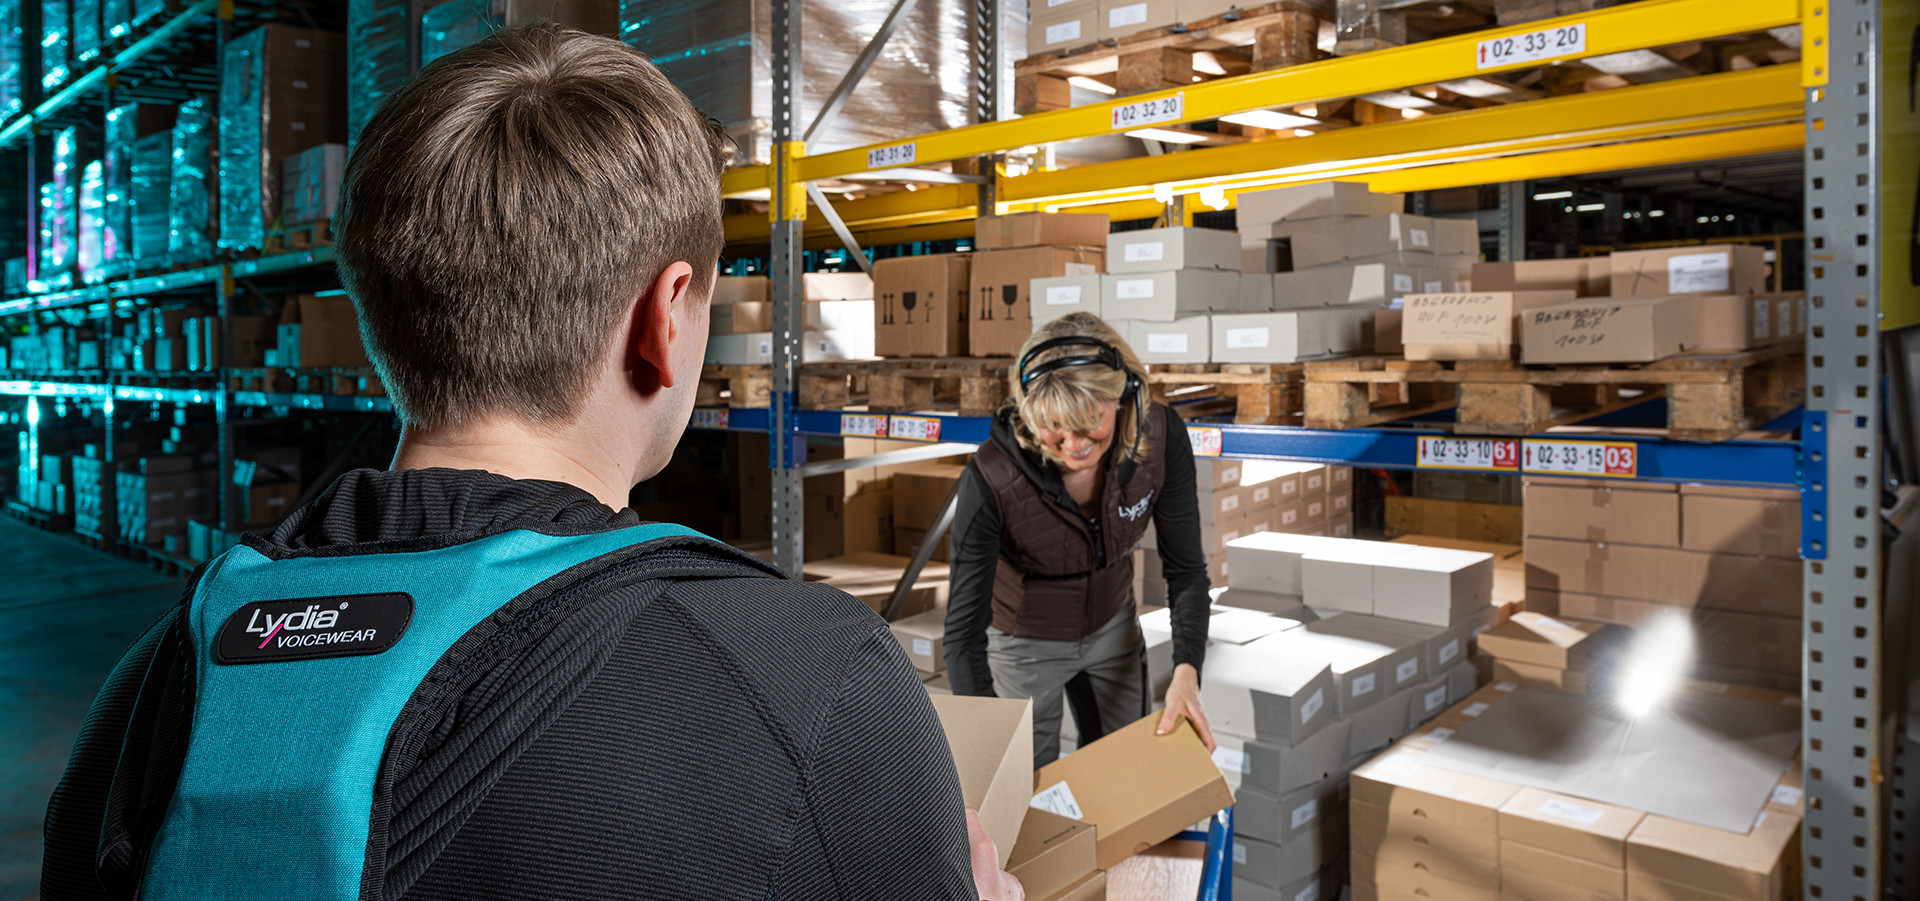 A warehouse employee gives a package to another warehouse employee, both of whom carry Lydia Voice devices.